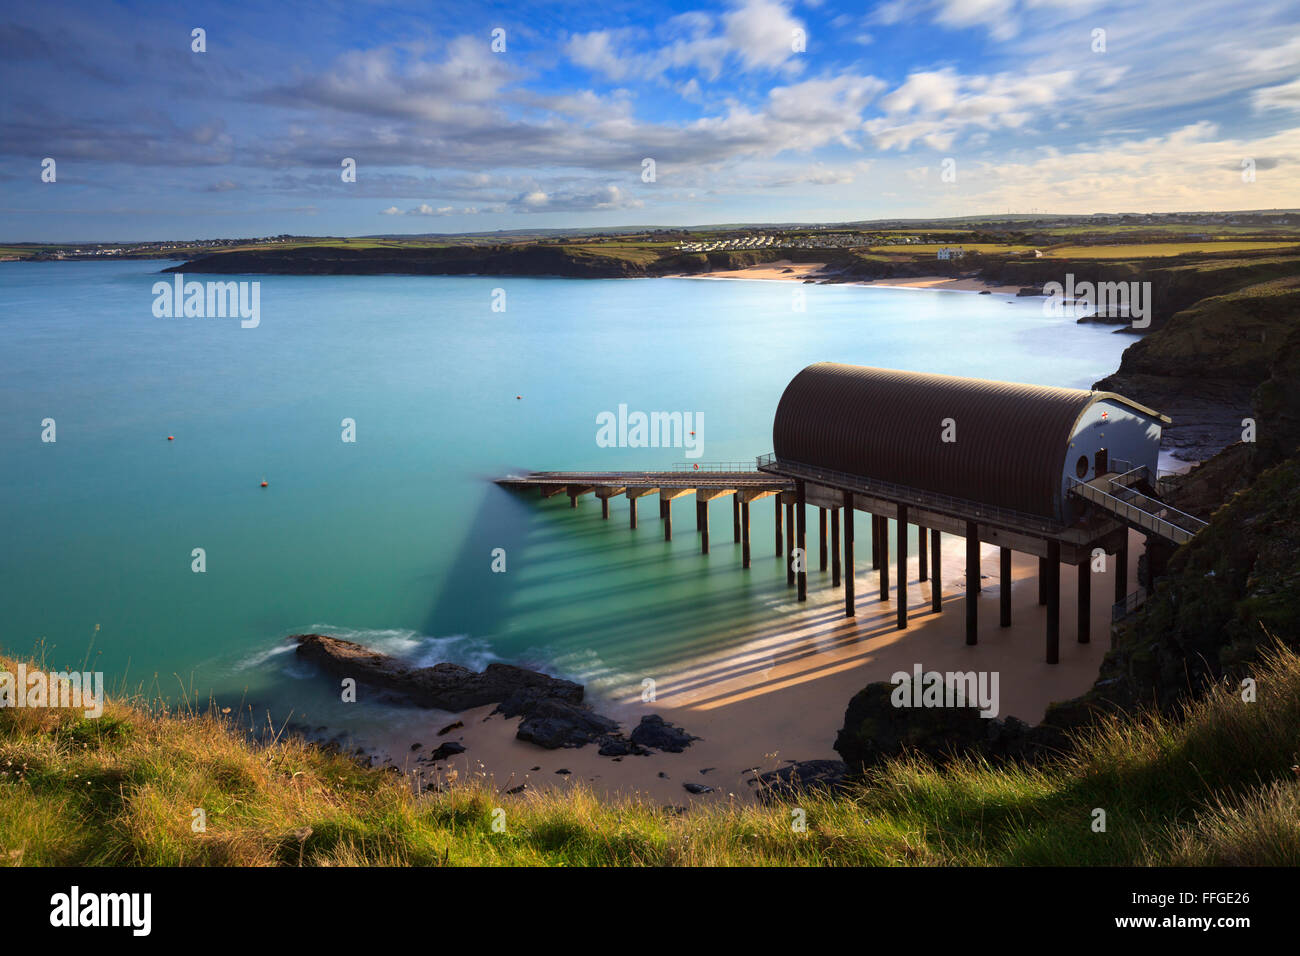 Padstow Lifeboat Station at Mother Ivey's Bay in Cornwall. - Stock Image